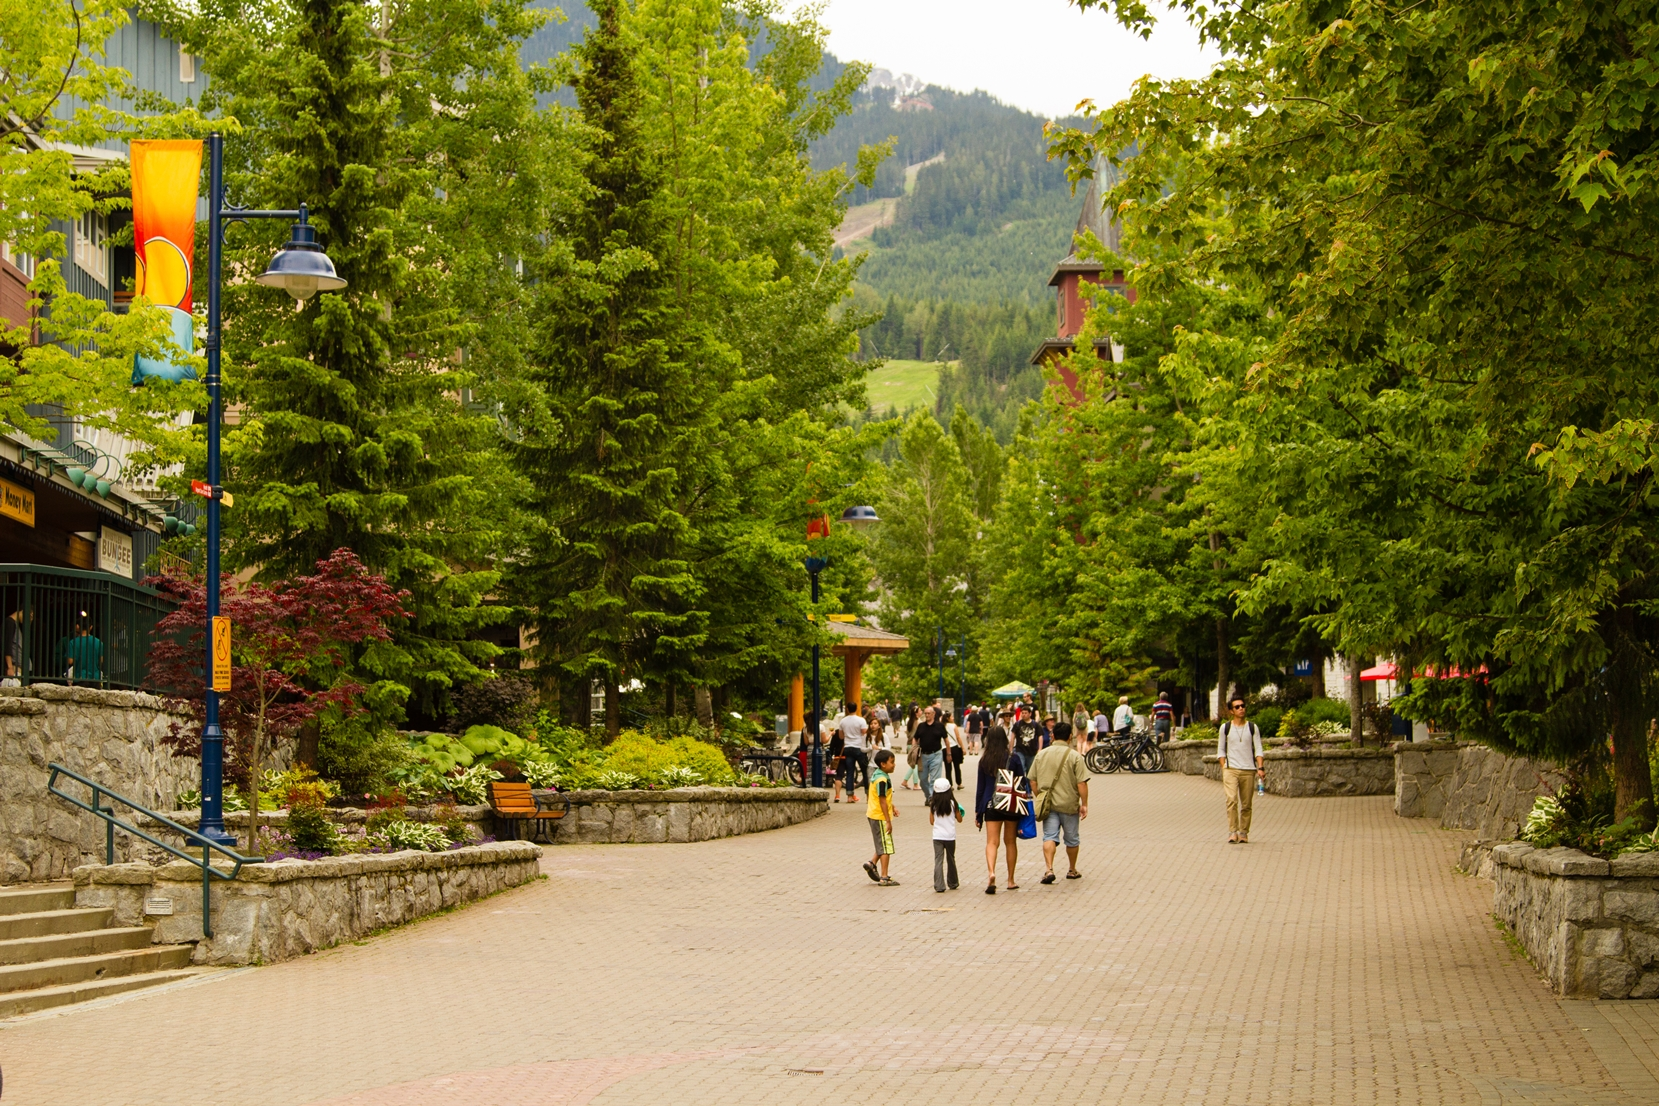 Whistler village is tucked away high up in the mountains of Garibaldi Provincial Park.